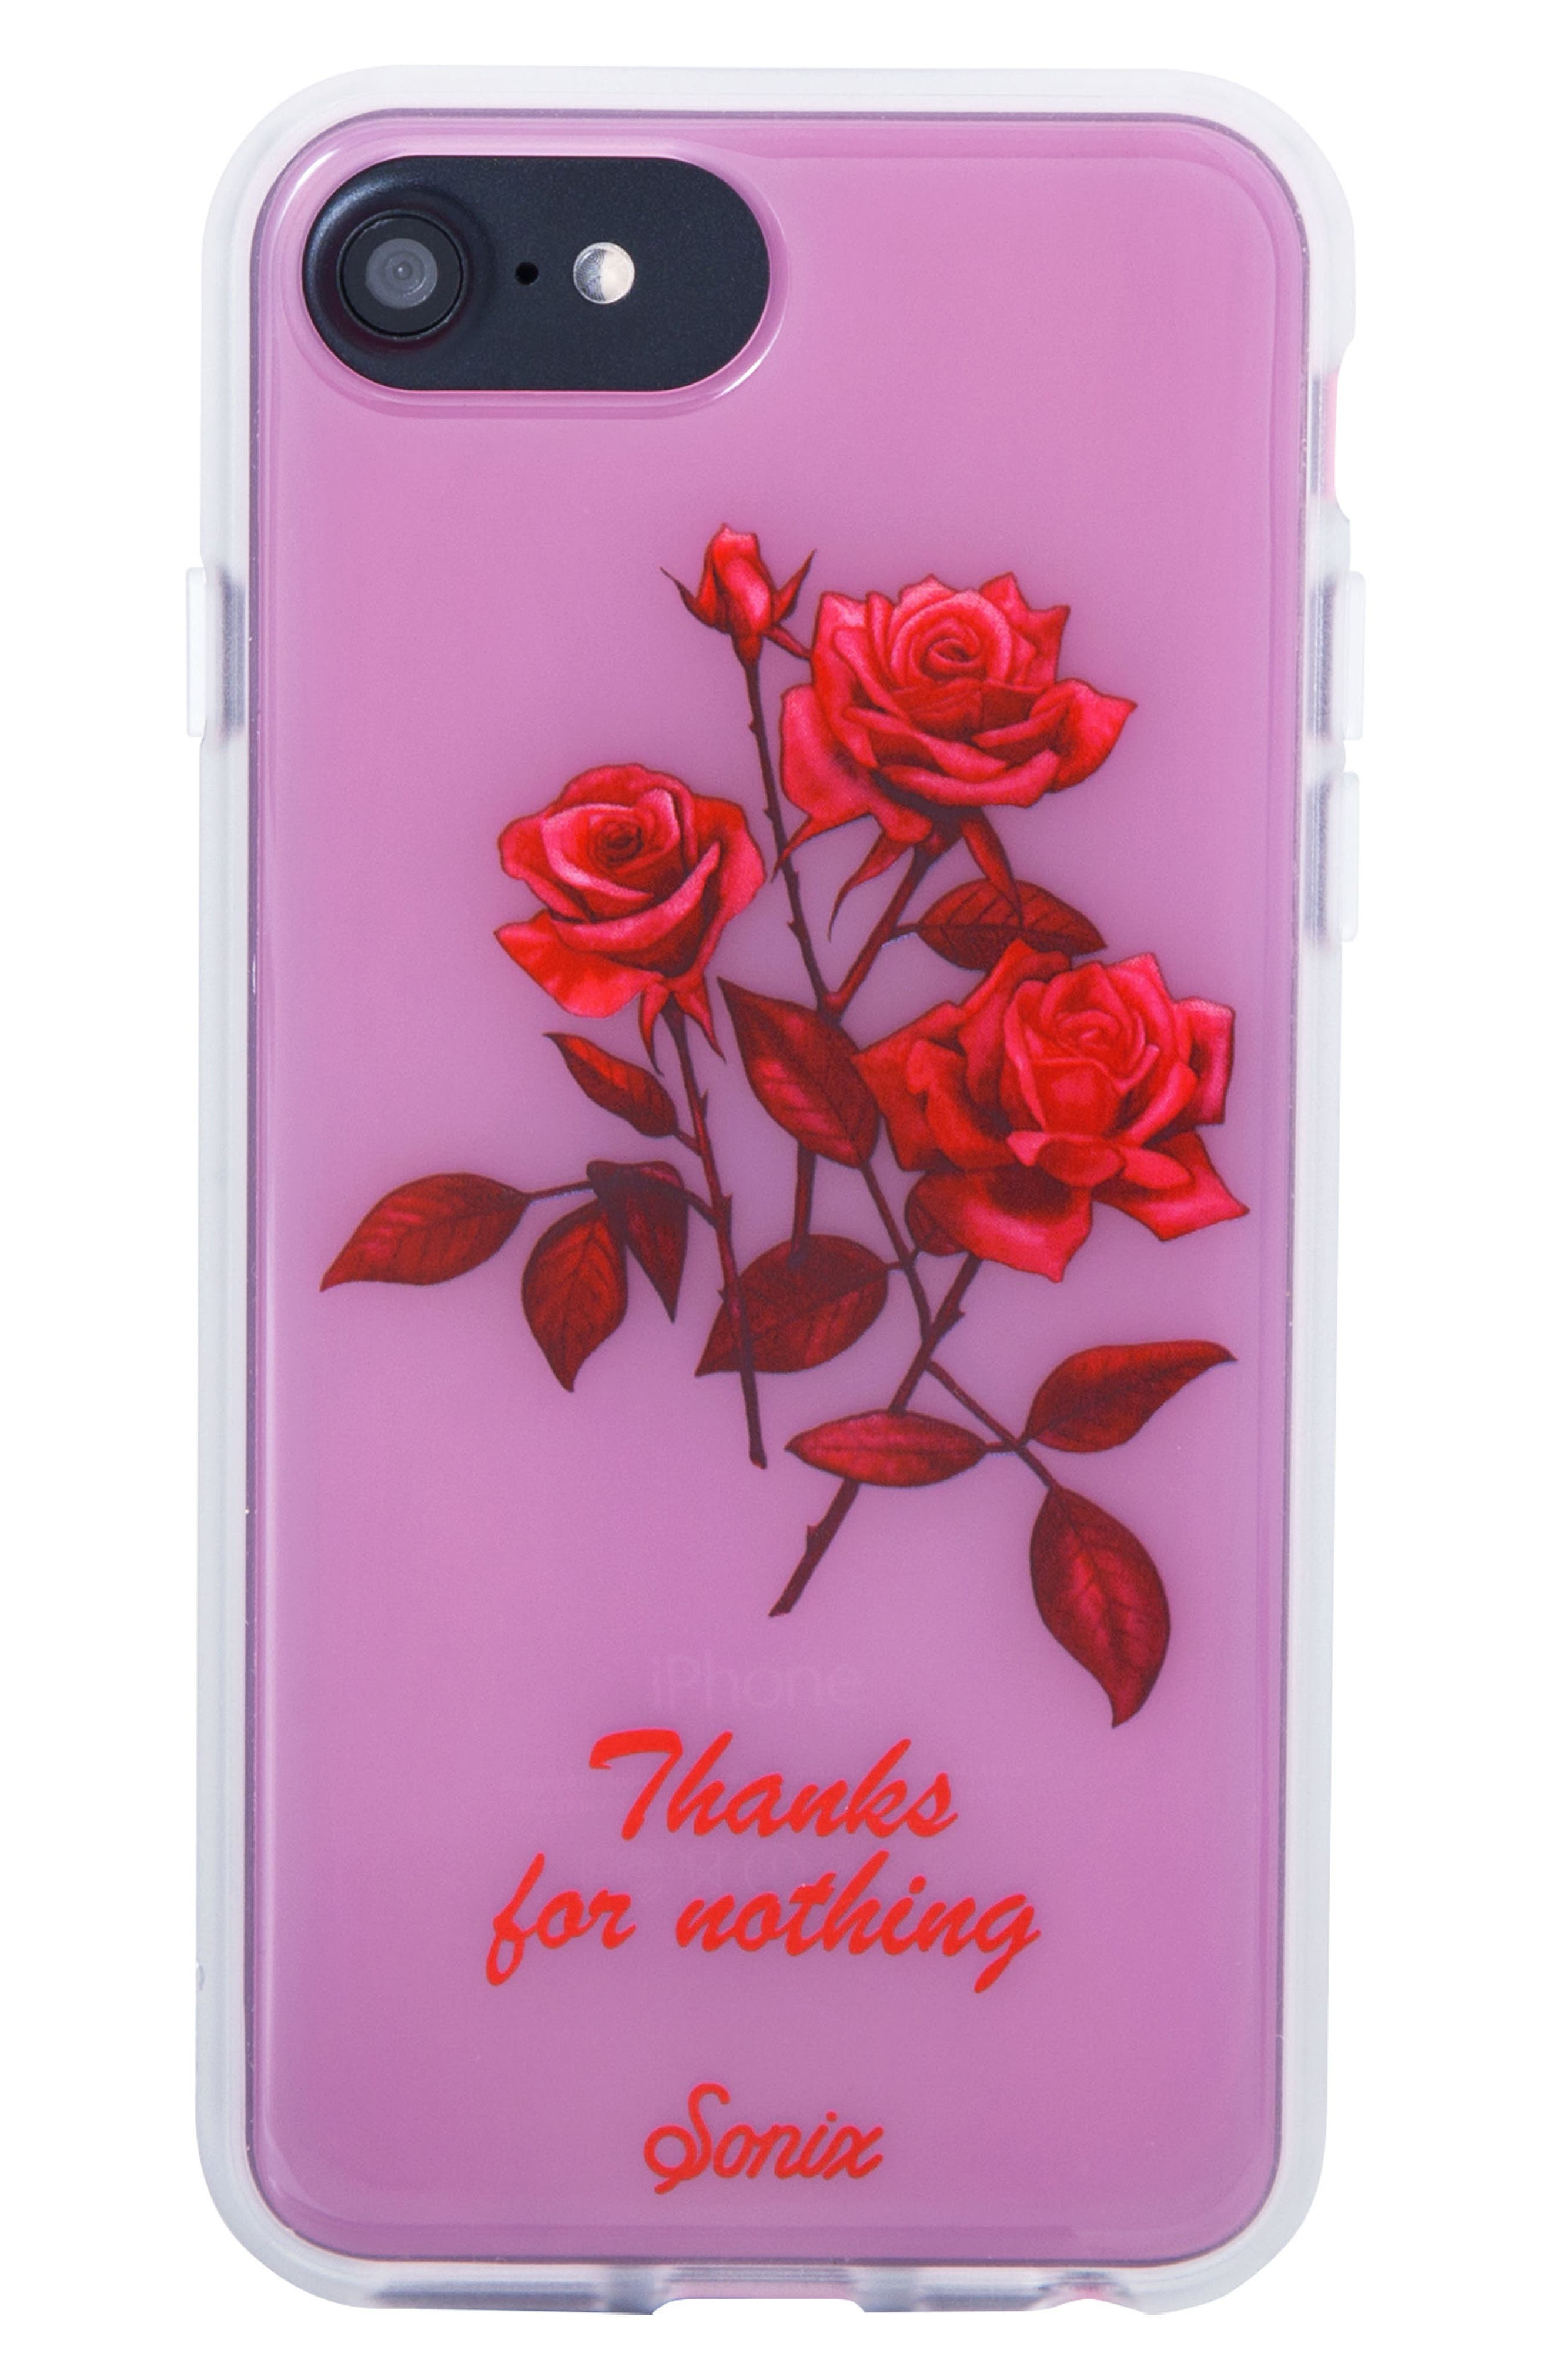 Thanks for Nothing iPhone 6/6s/7/8 & 6/6s/7/8 Plus Case,                             Main thumbnail 1, color,                             Pink/ Red